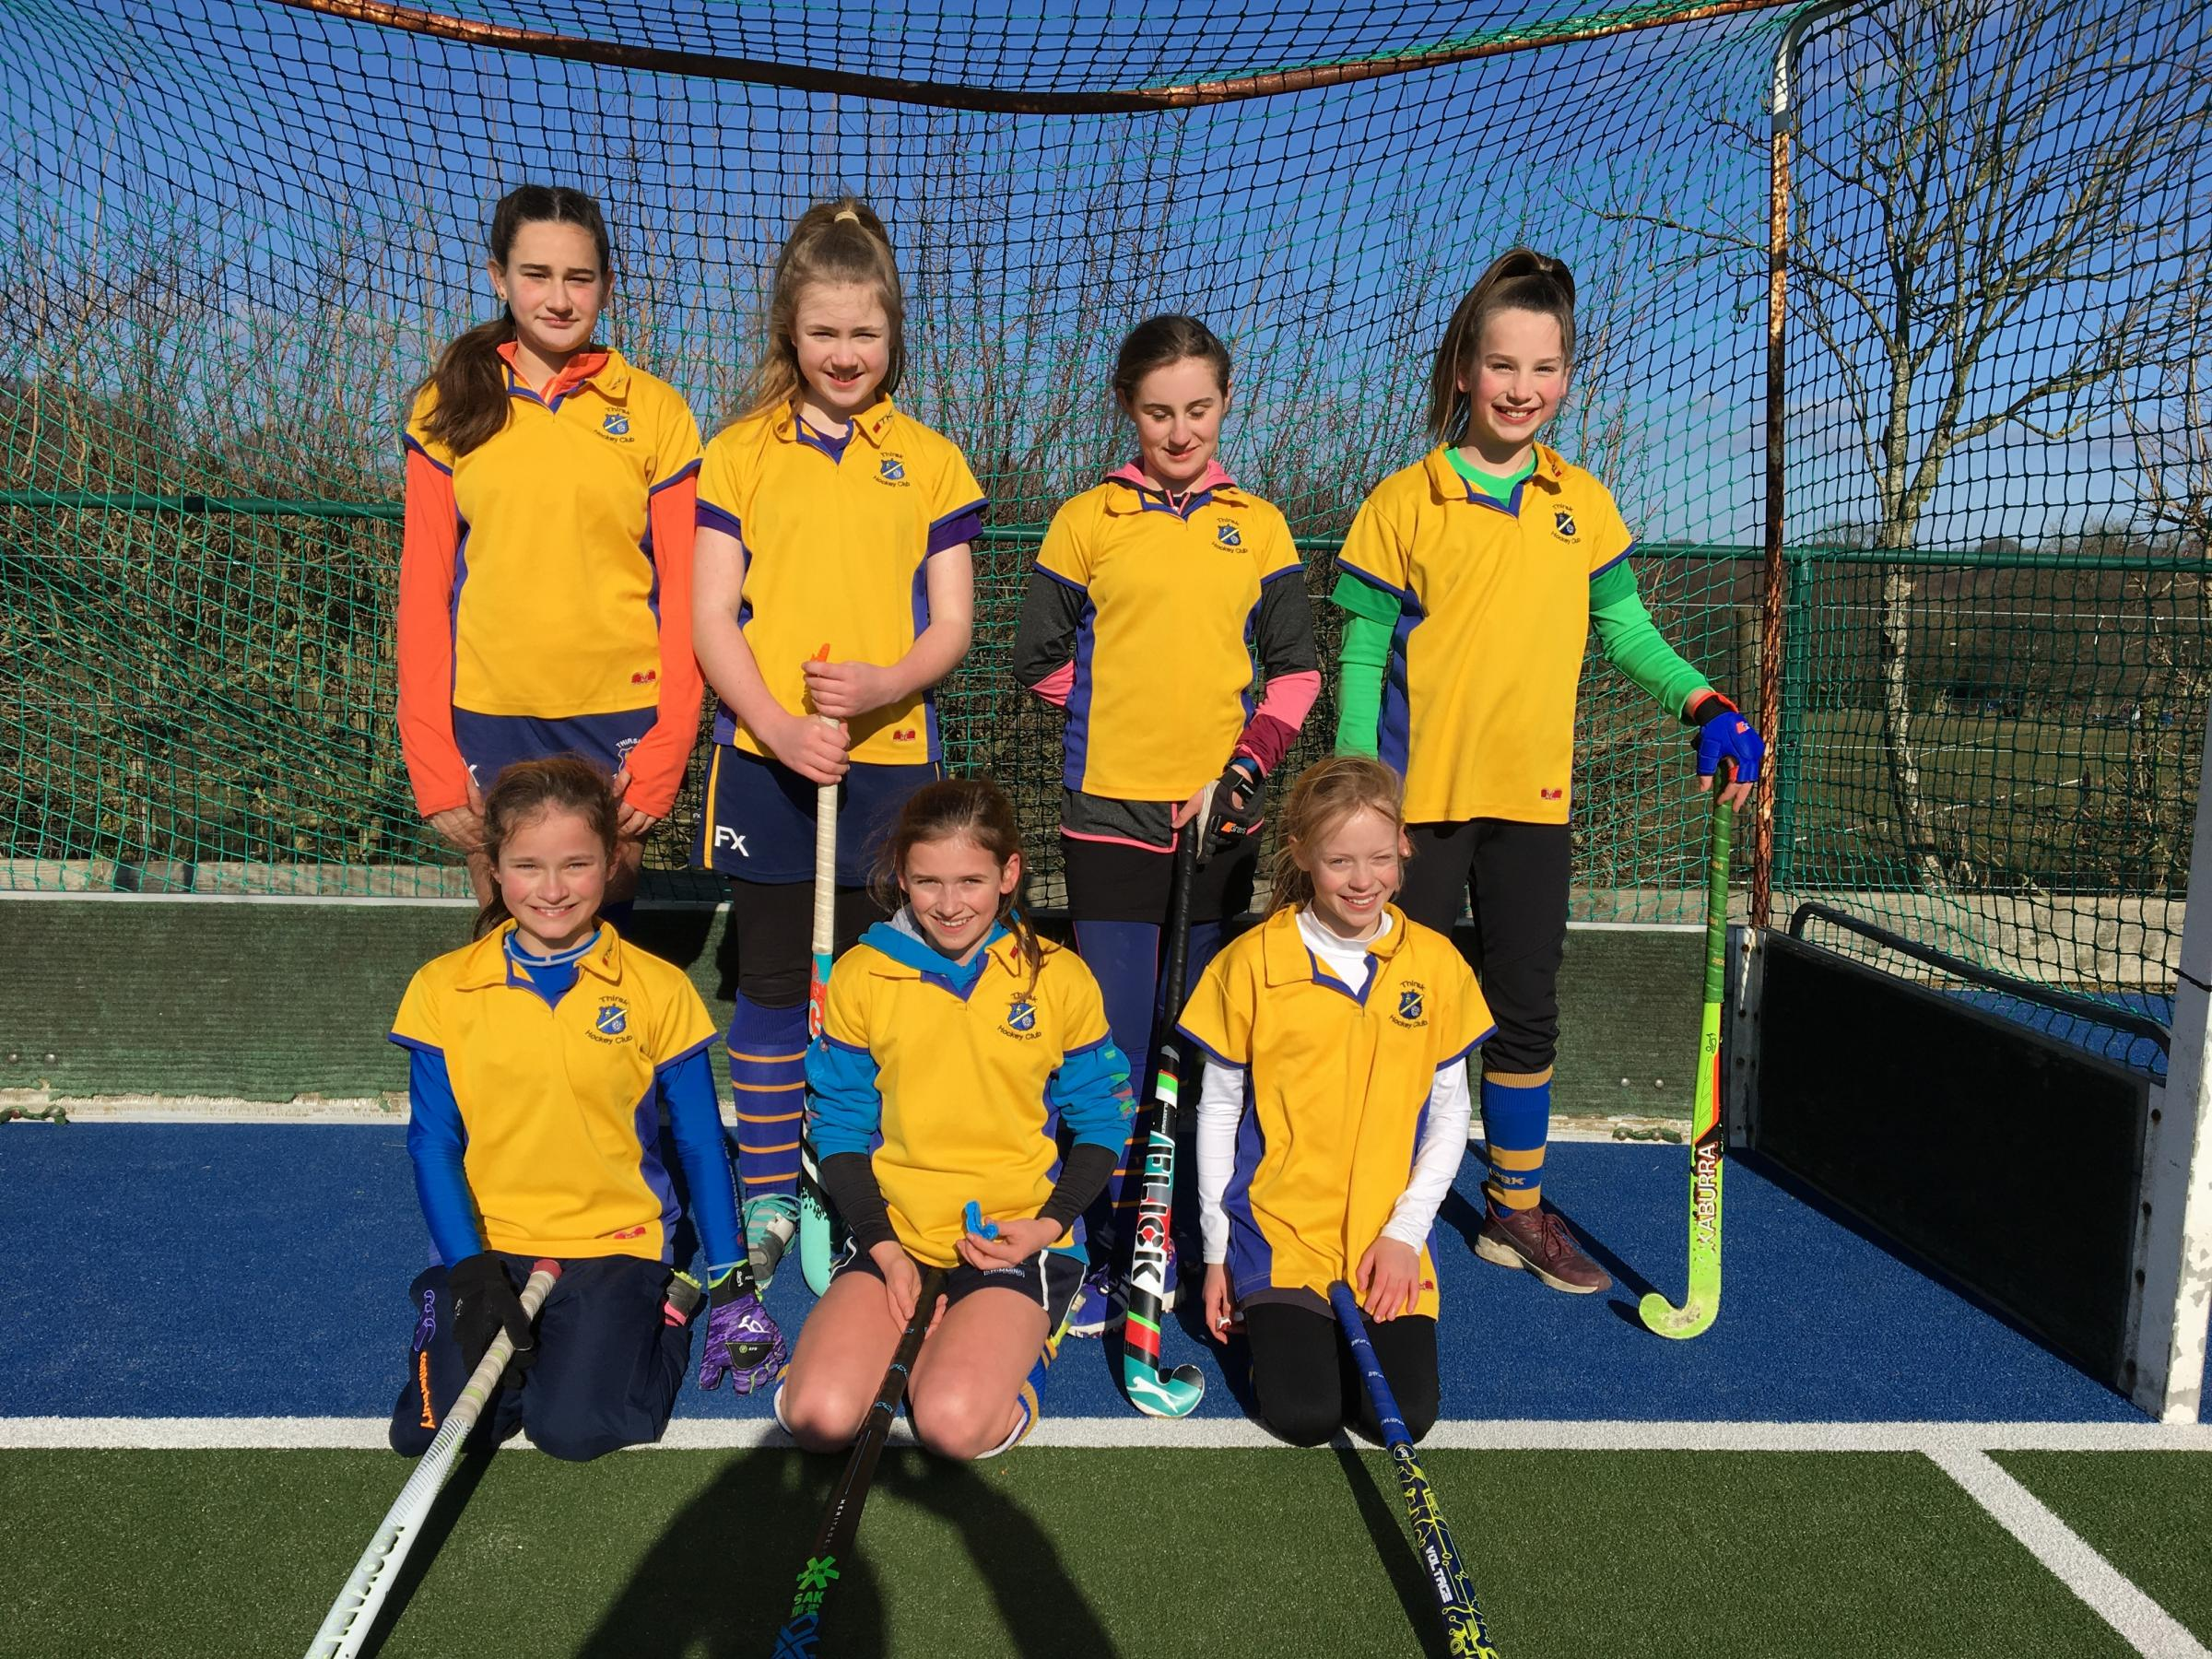 Thirsk under 12 girls' B team, who played several matches at Weetwood and did well, despite having to borrow a goalkeeper